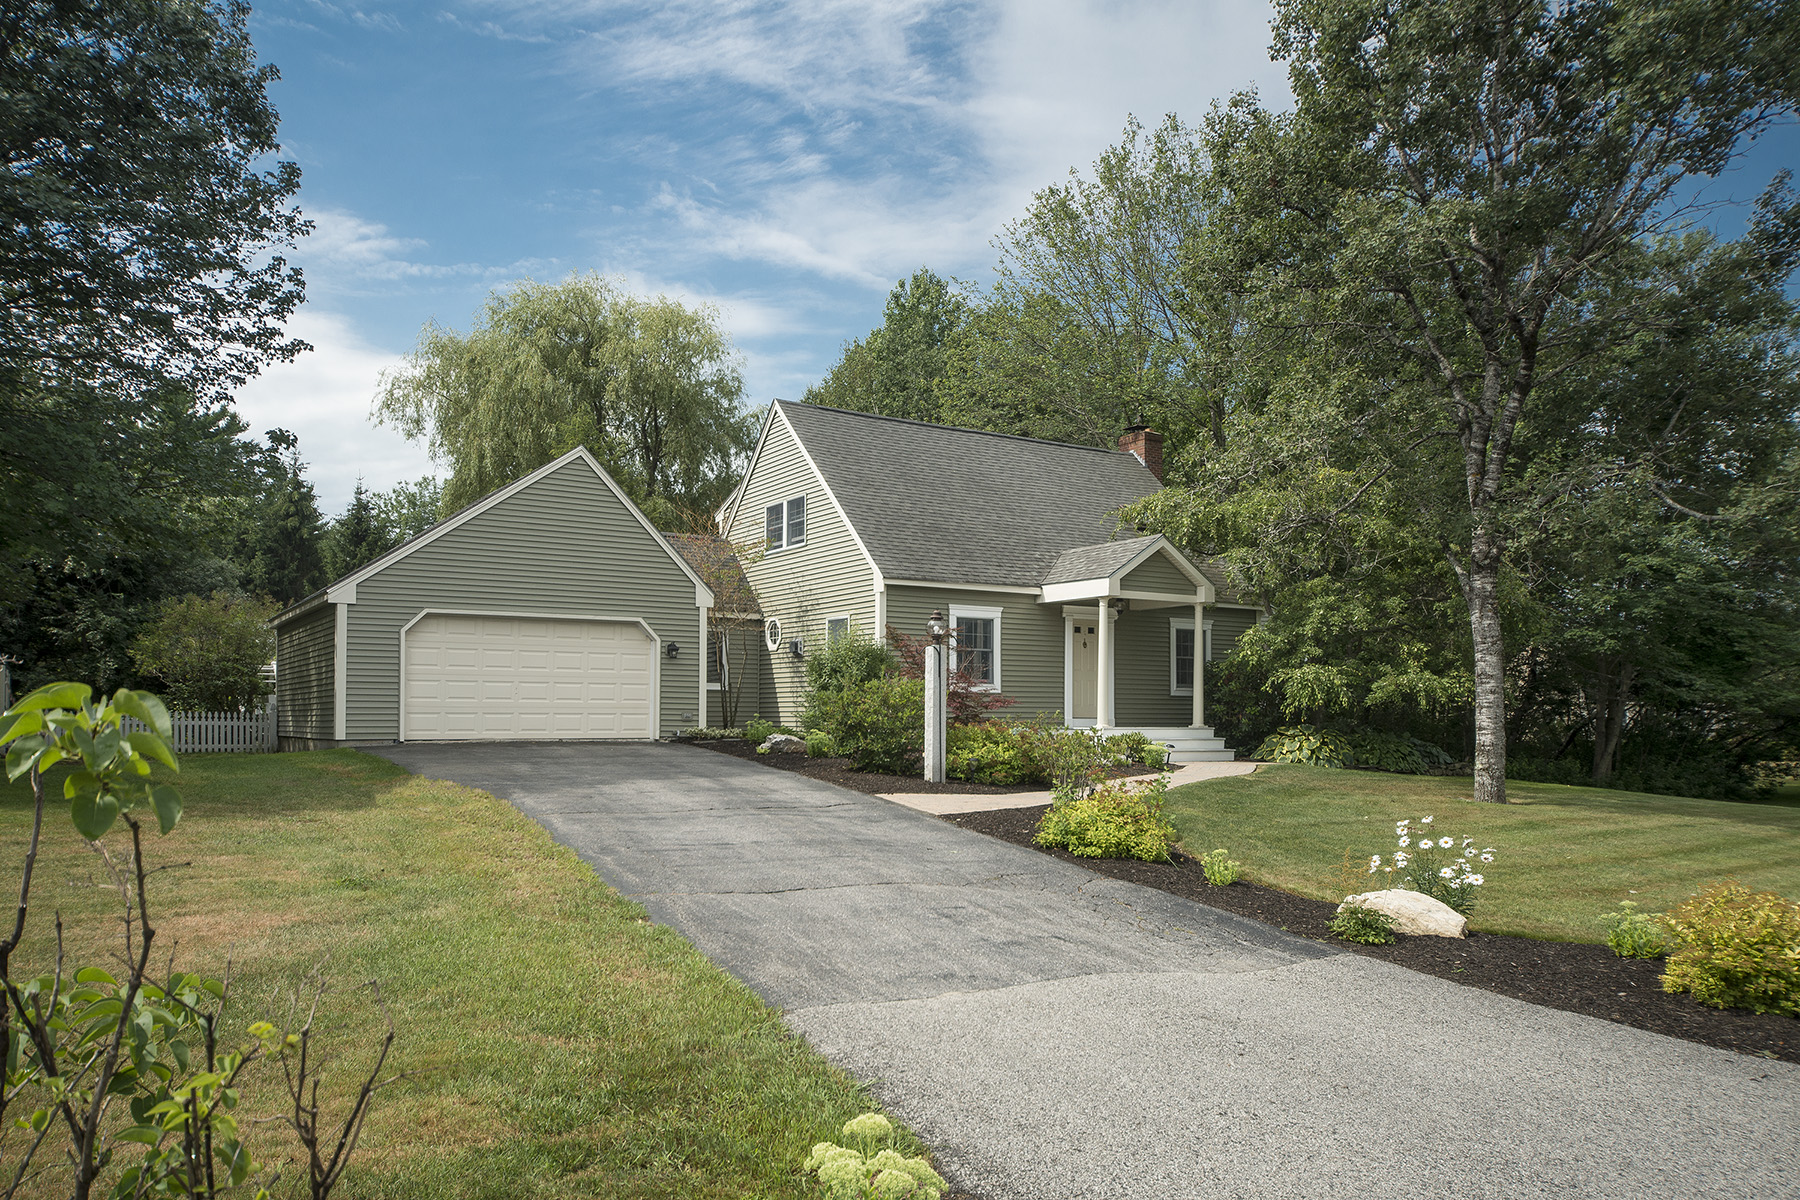 Single Family Home for Sale at 8 Madison Drive Yarmouth, Maine, 04096 United States